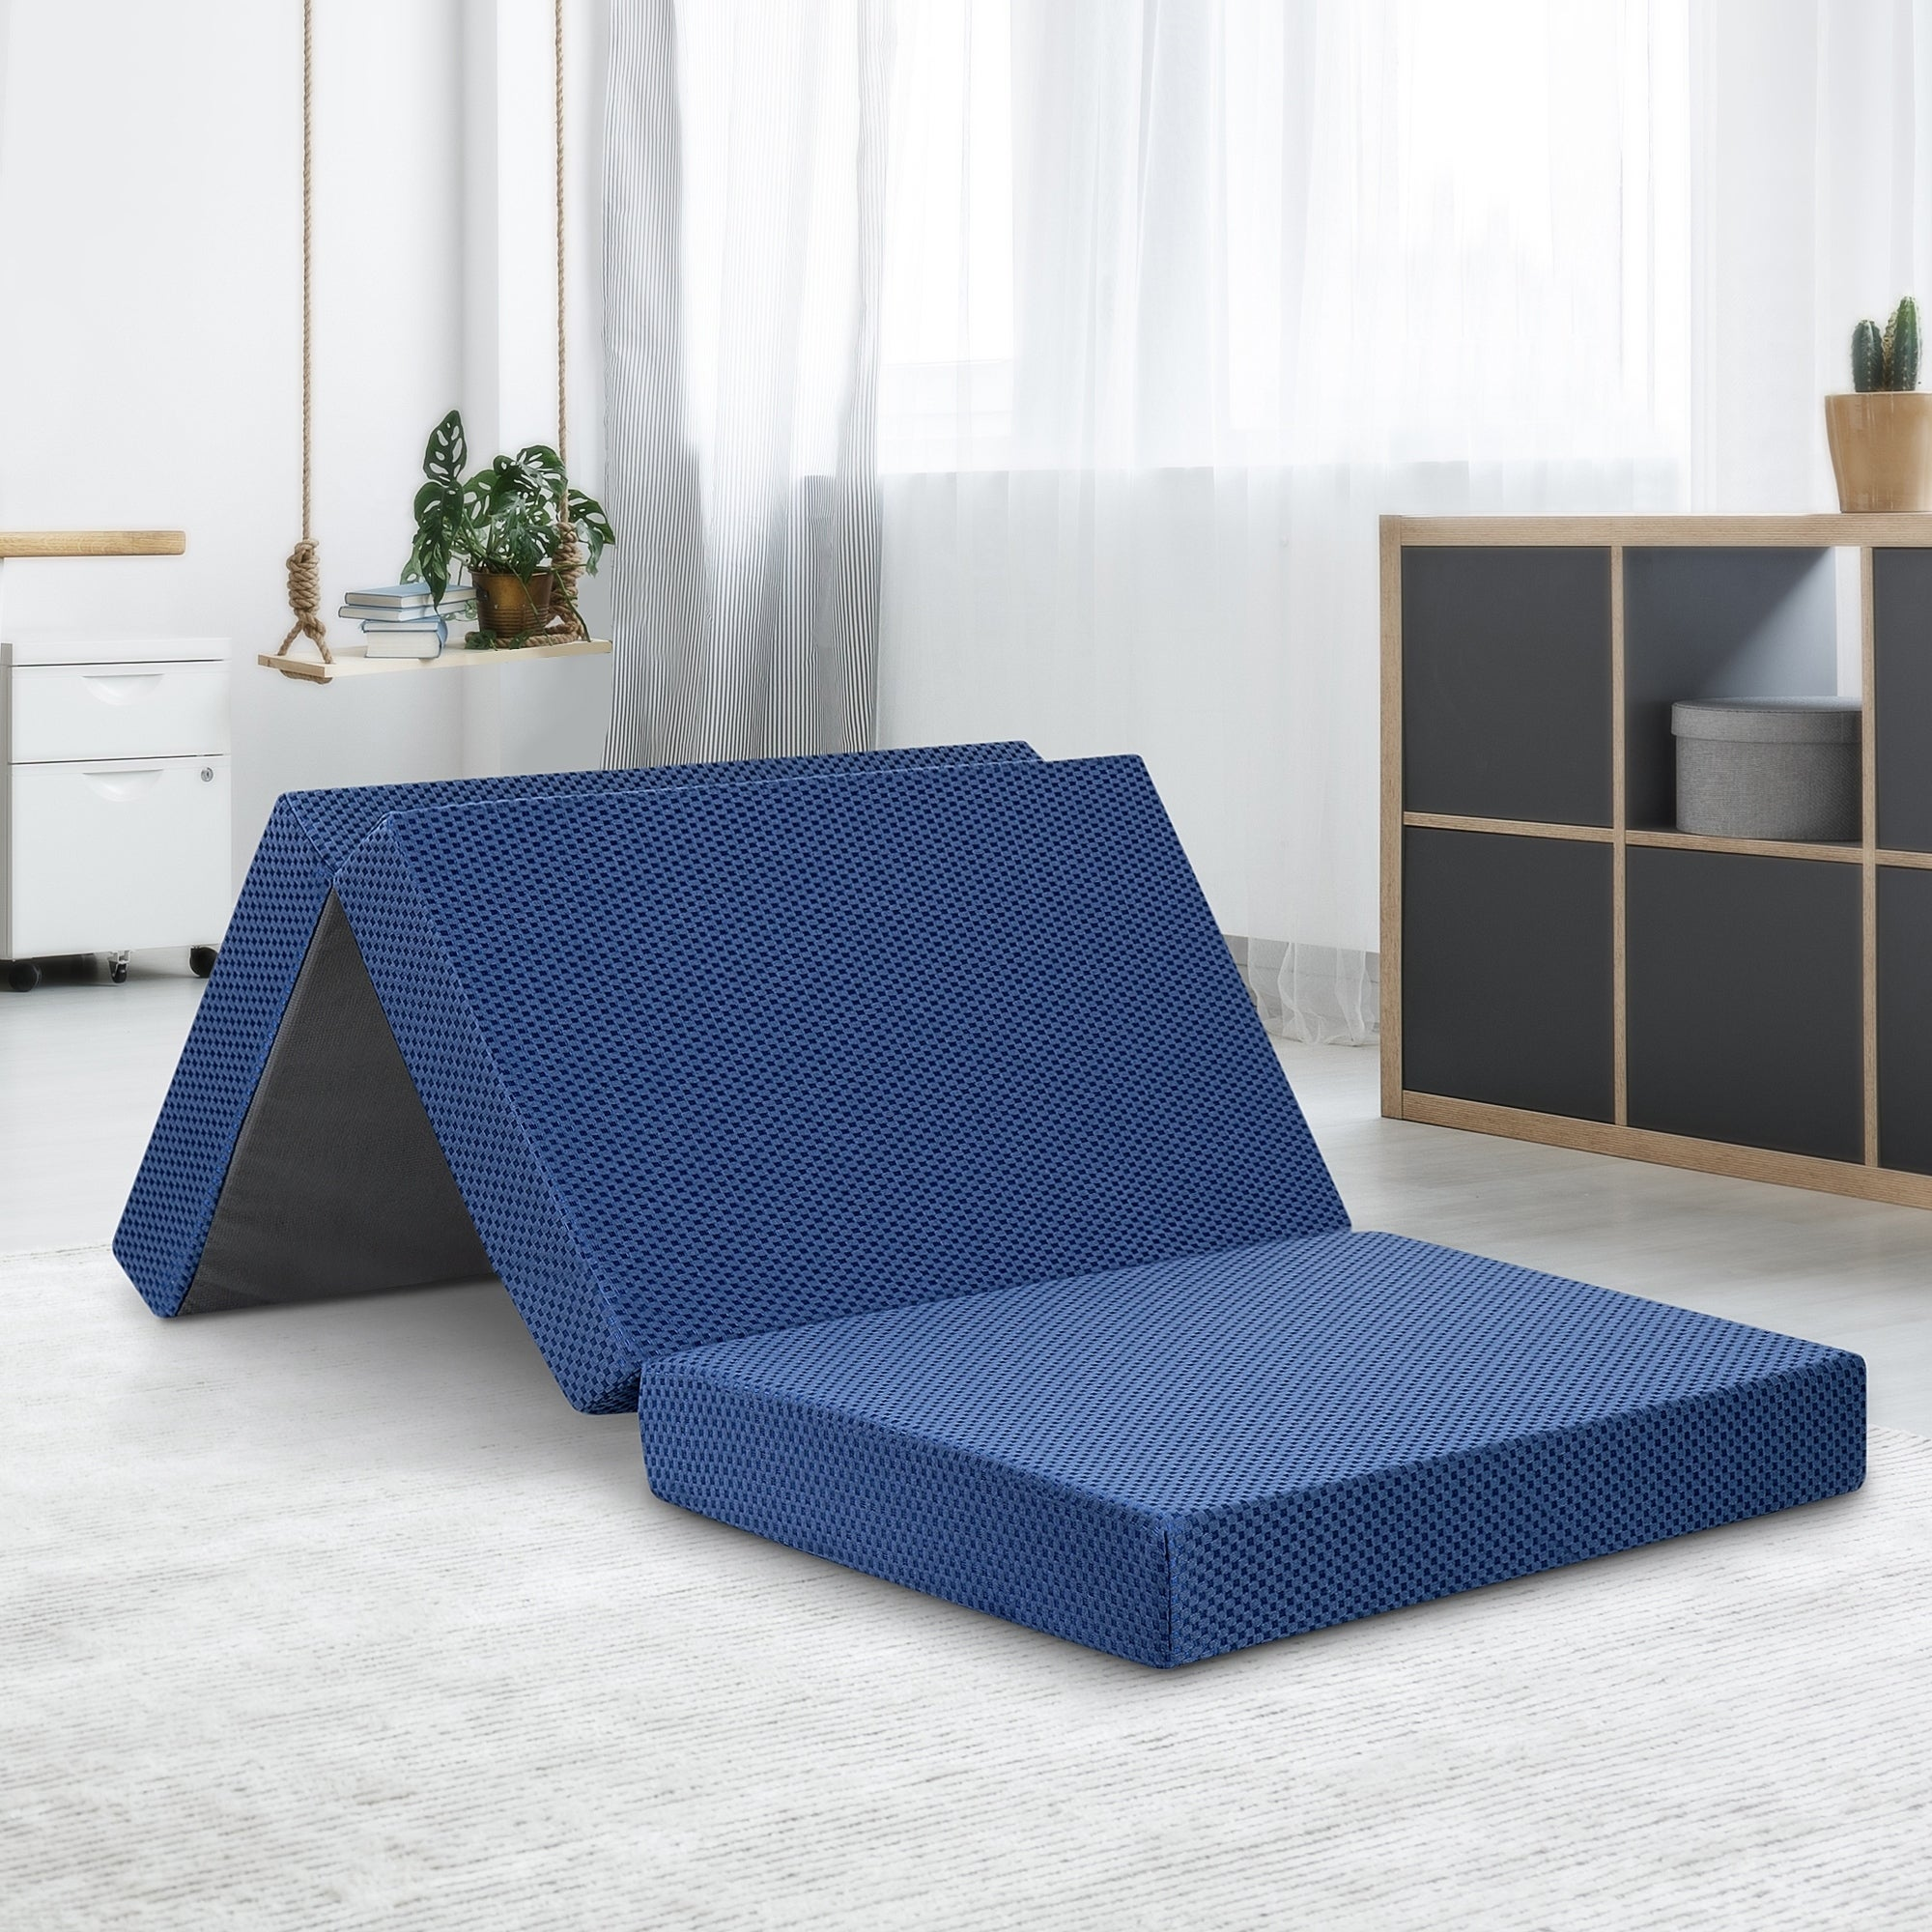 TriFold Memory Foam Mattress Sleeper Portable Camping Dorm Bed With Blue Cover